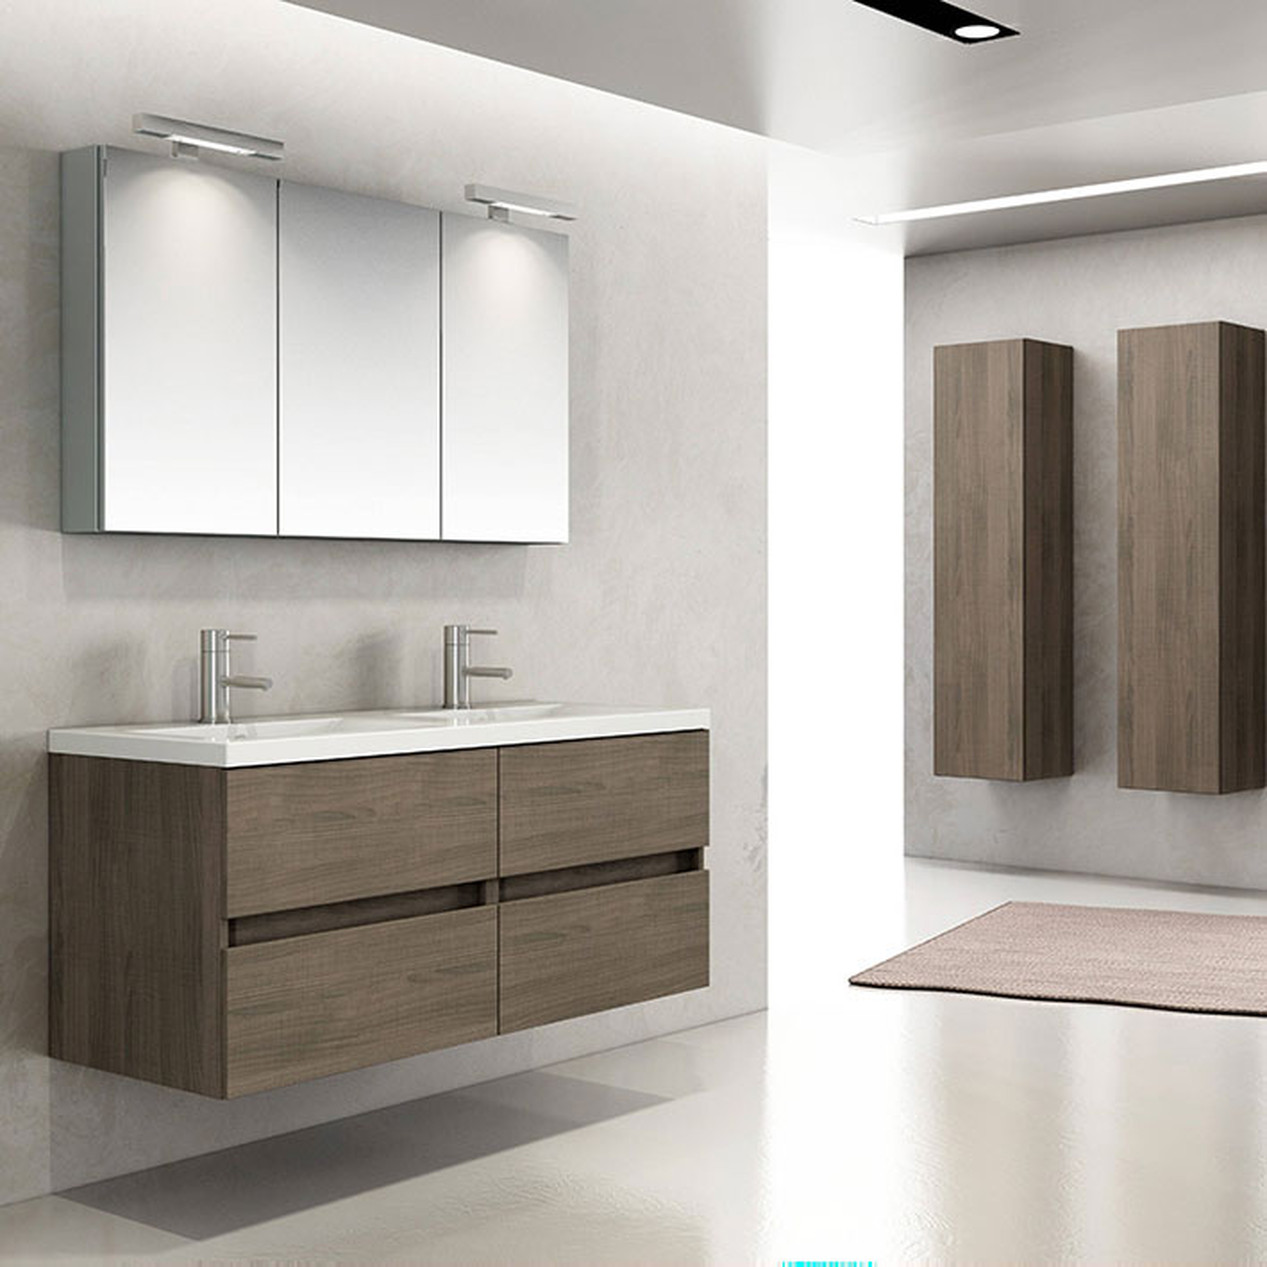 Bathroom Remodeling | Precision Construction Corp.